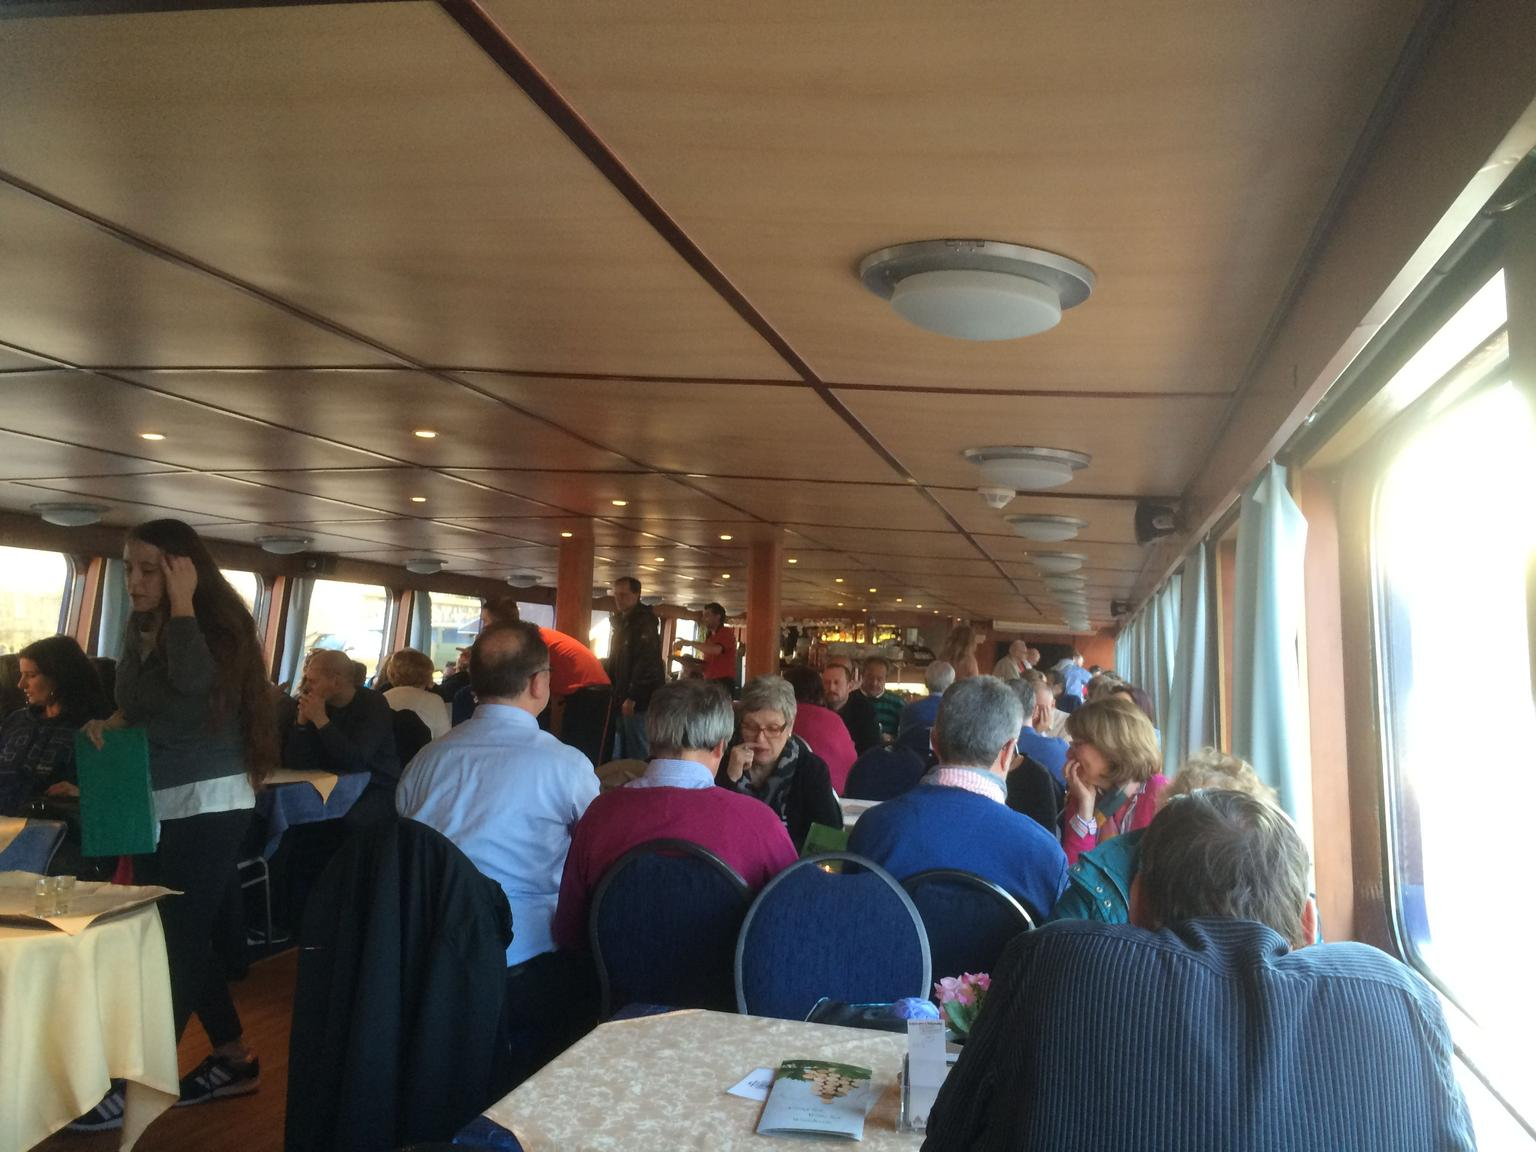 MORE PHOTOS, Prague Evening Cruise with Buffet-Style Dinner and Live Music